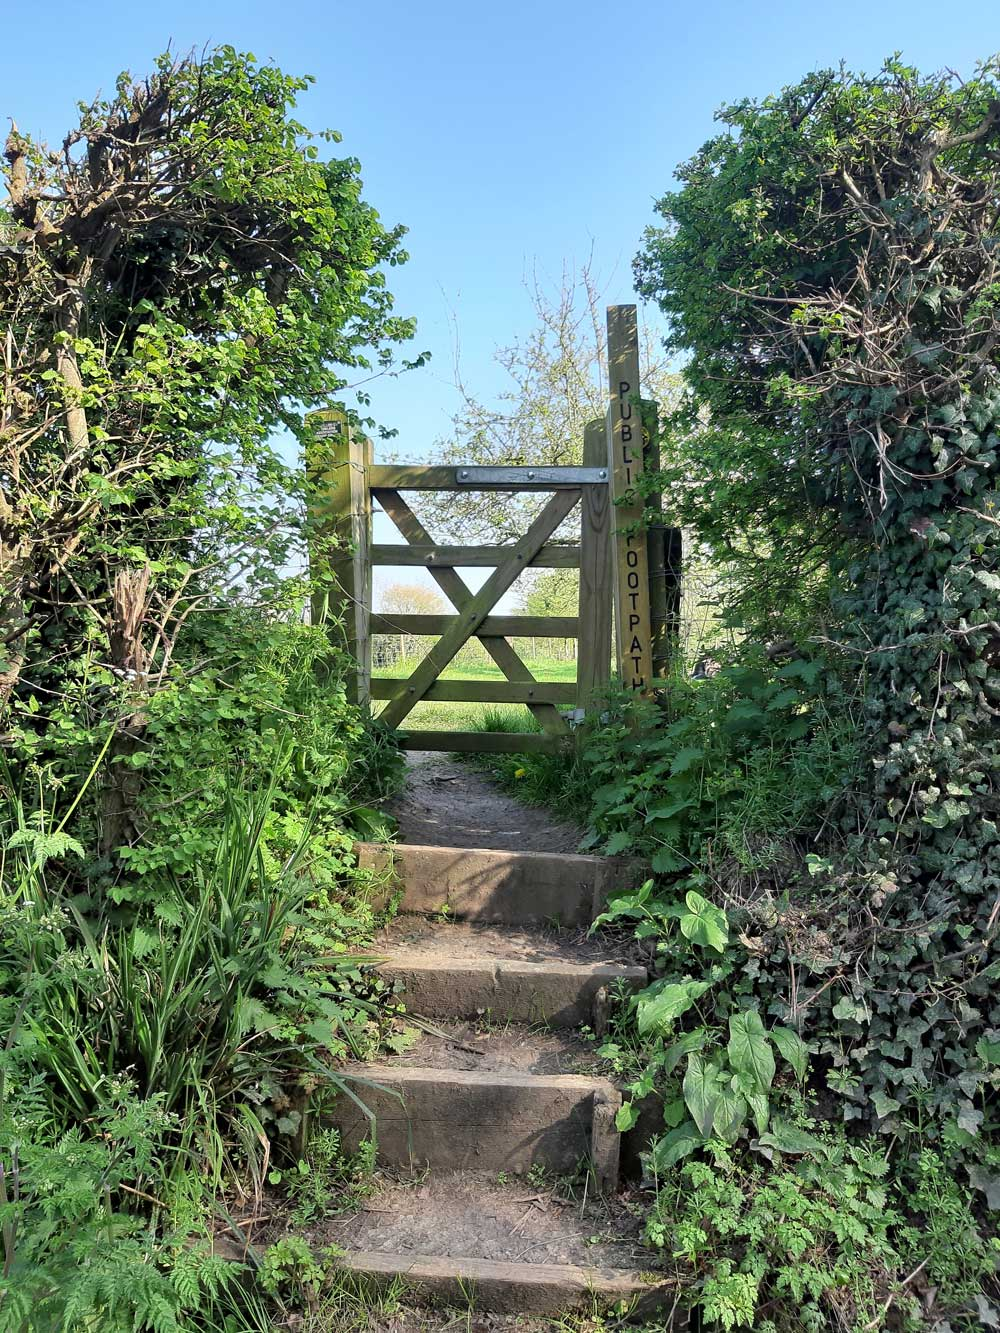 Access to local footpath